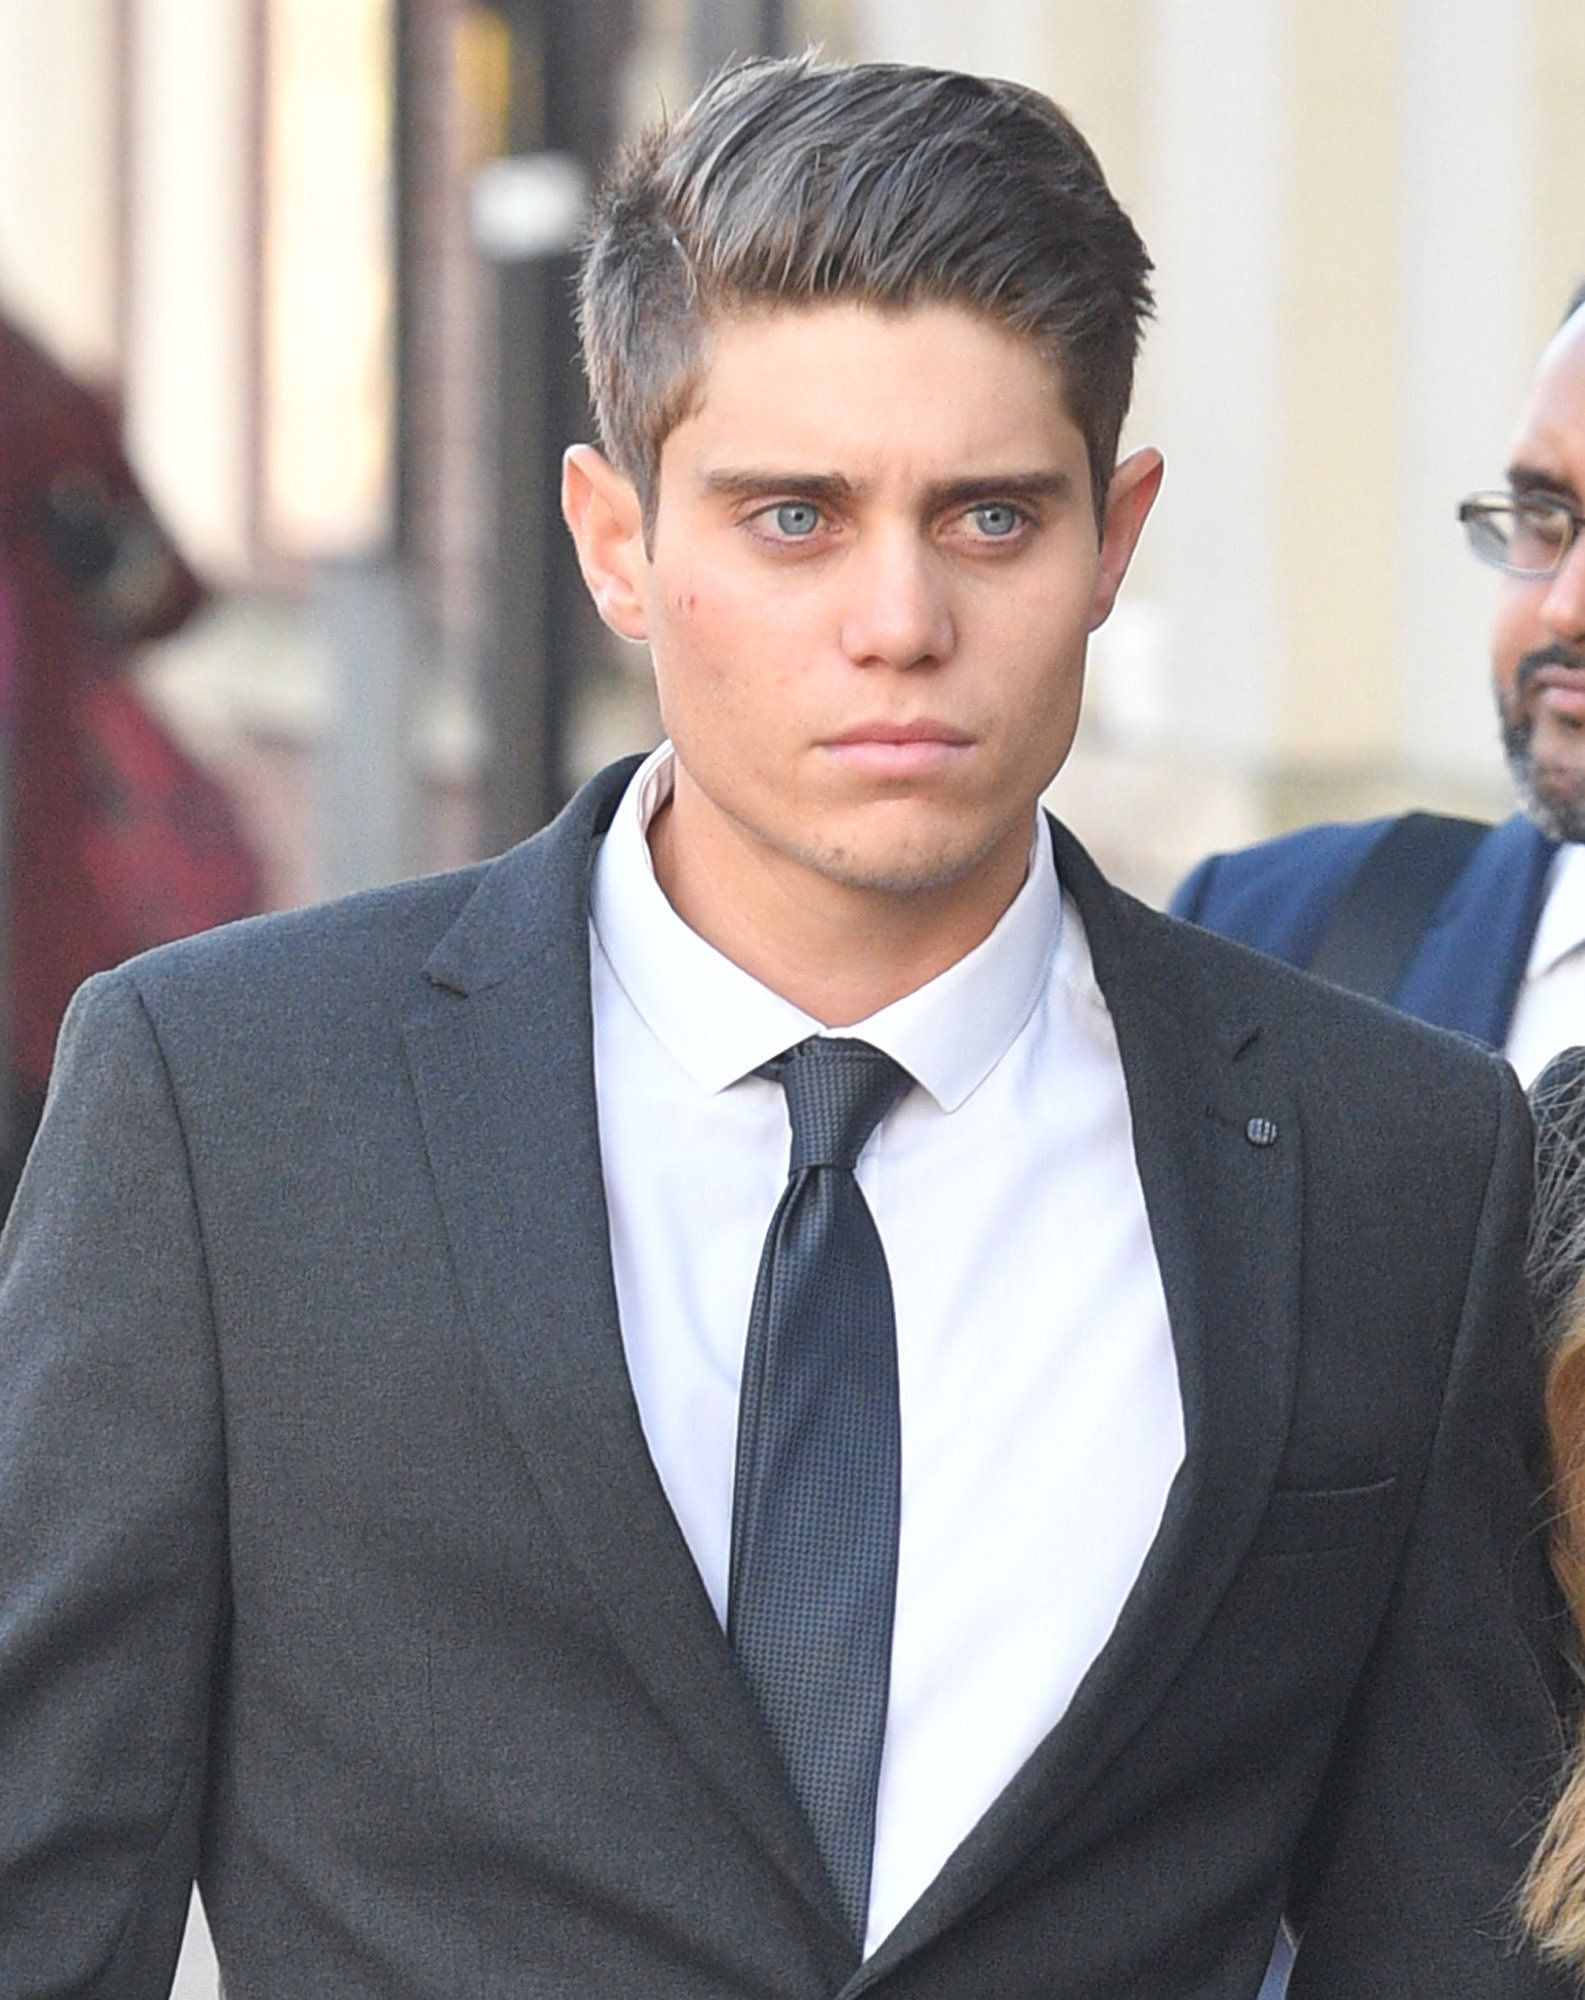 Cricketer Accused Of Rape Breaks Down In Court As He Insists Sex With Woman Was